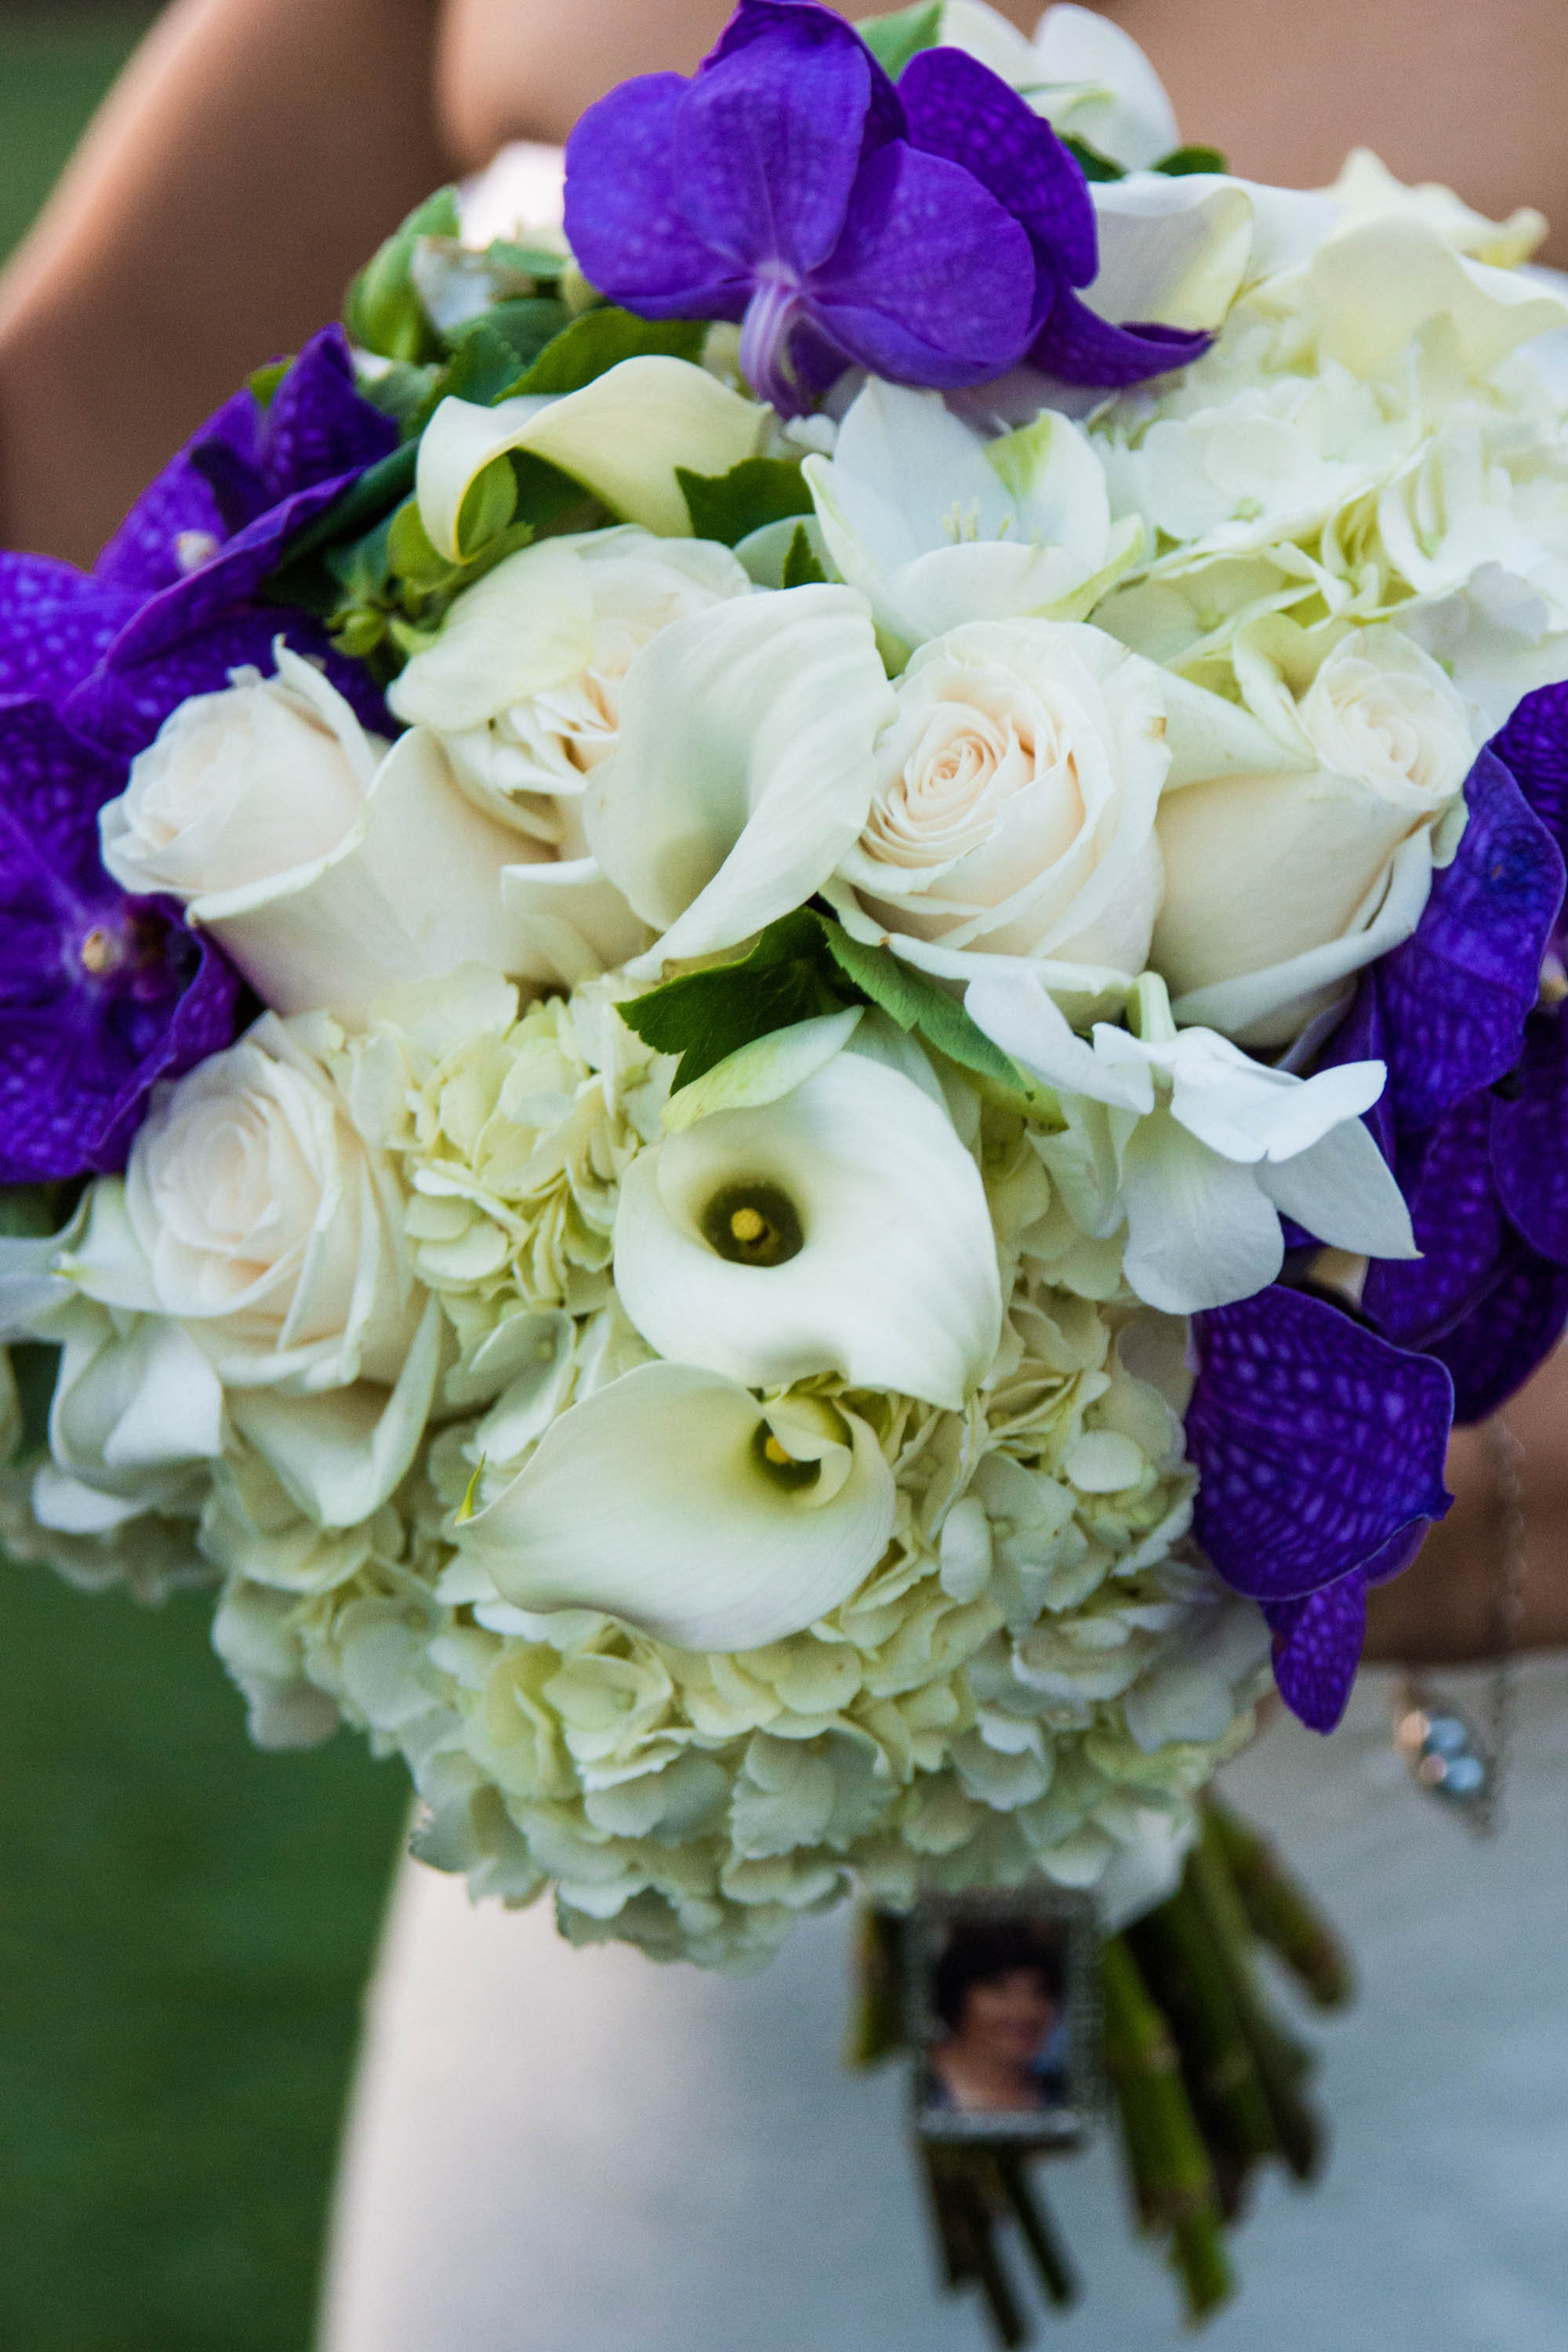 flowersbyazalea_Bride_bouquet_white_purple_Romantic_orchid_hydrangea_rose_lilies_bouquet